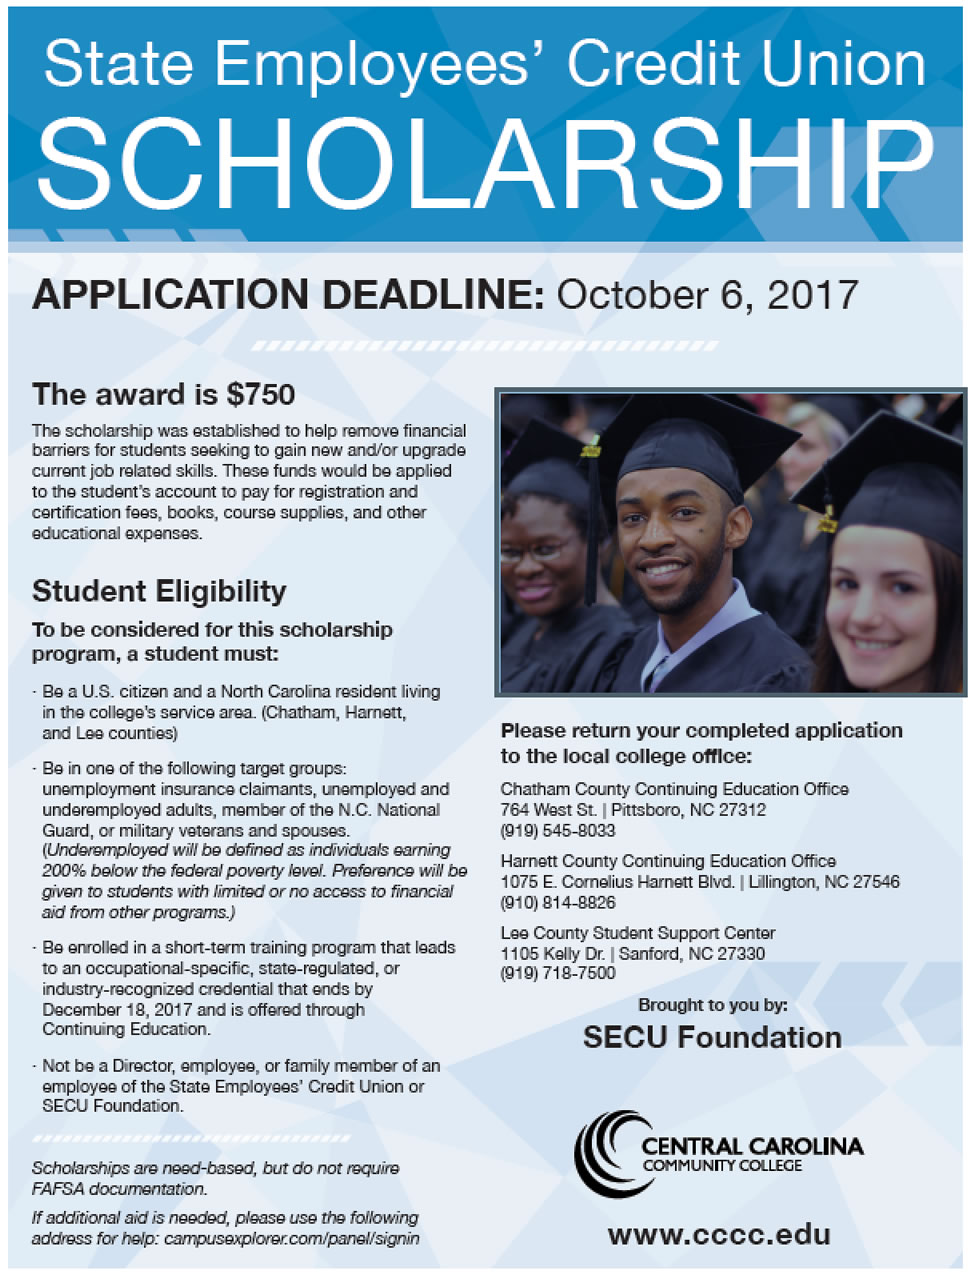 Click to enlarge,  For more information on the scholarship, call CCCC at 919-718-7500, 910-814-8826, or 919-545-8033.